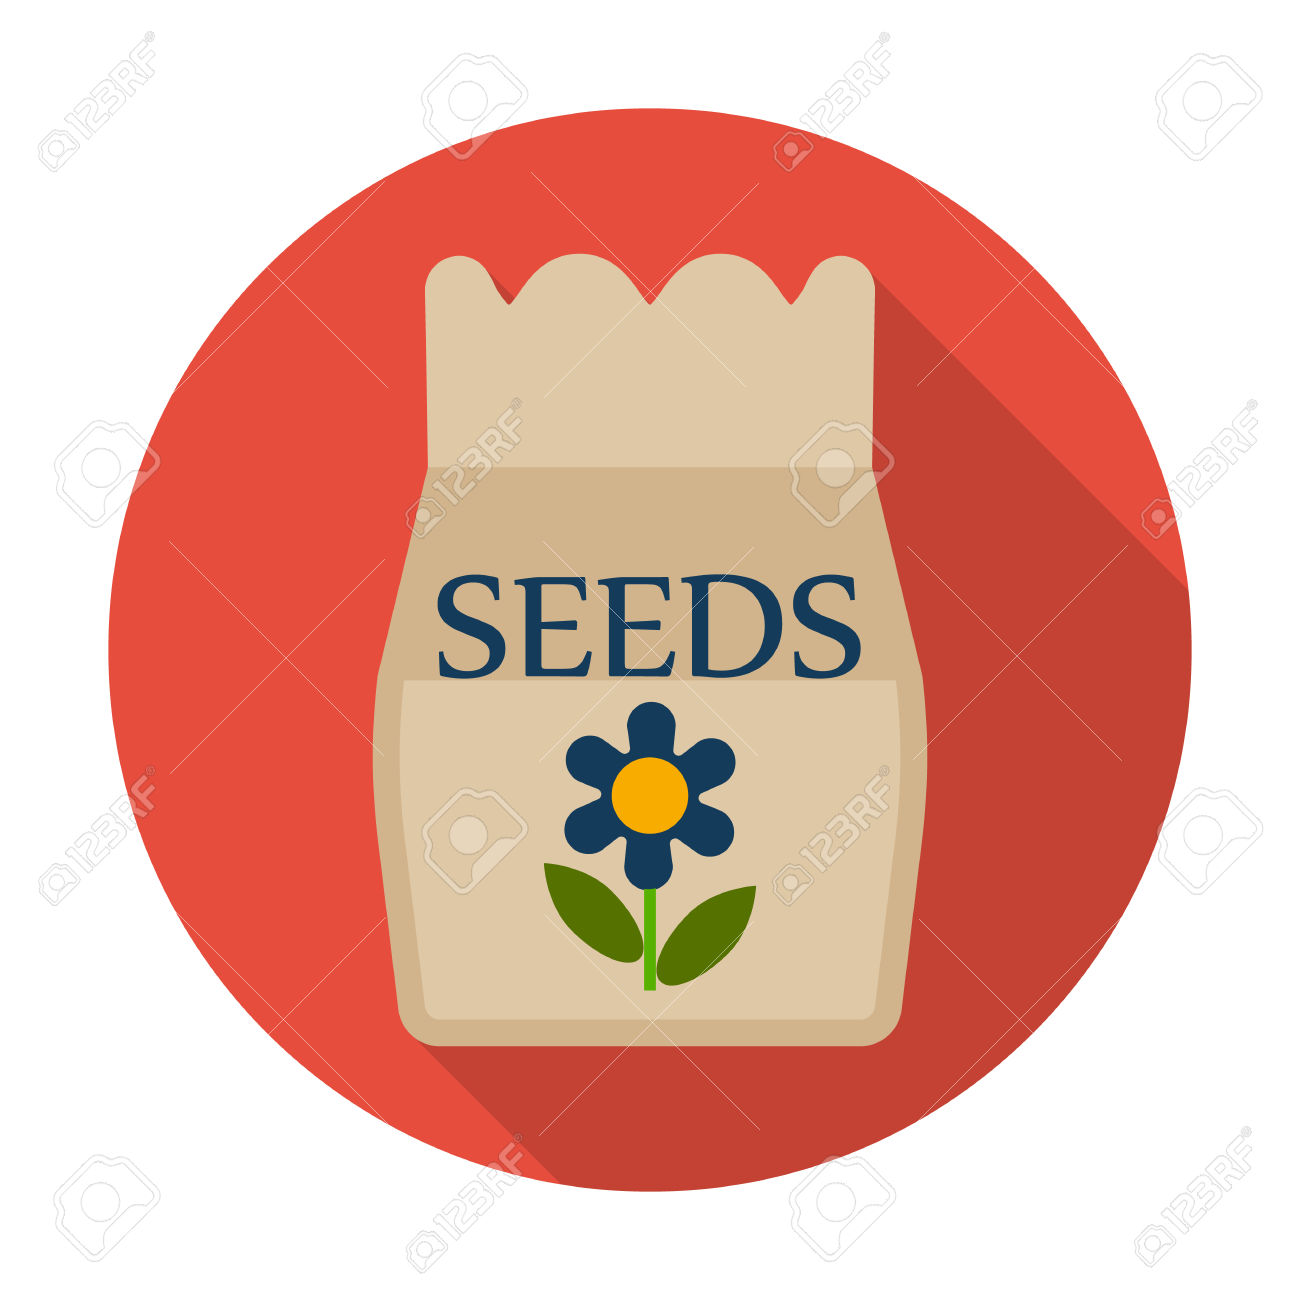 Seeds Flat Icon With Long Shadow For Web Design Royalty Free.